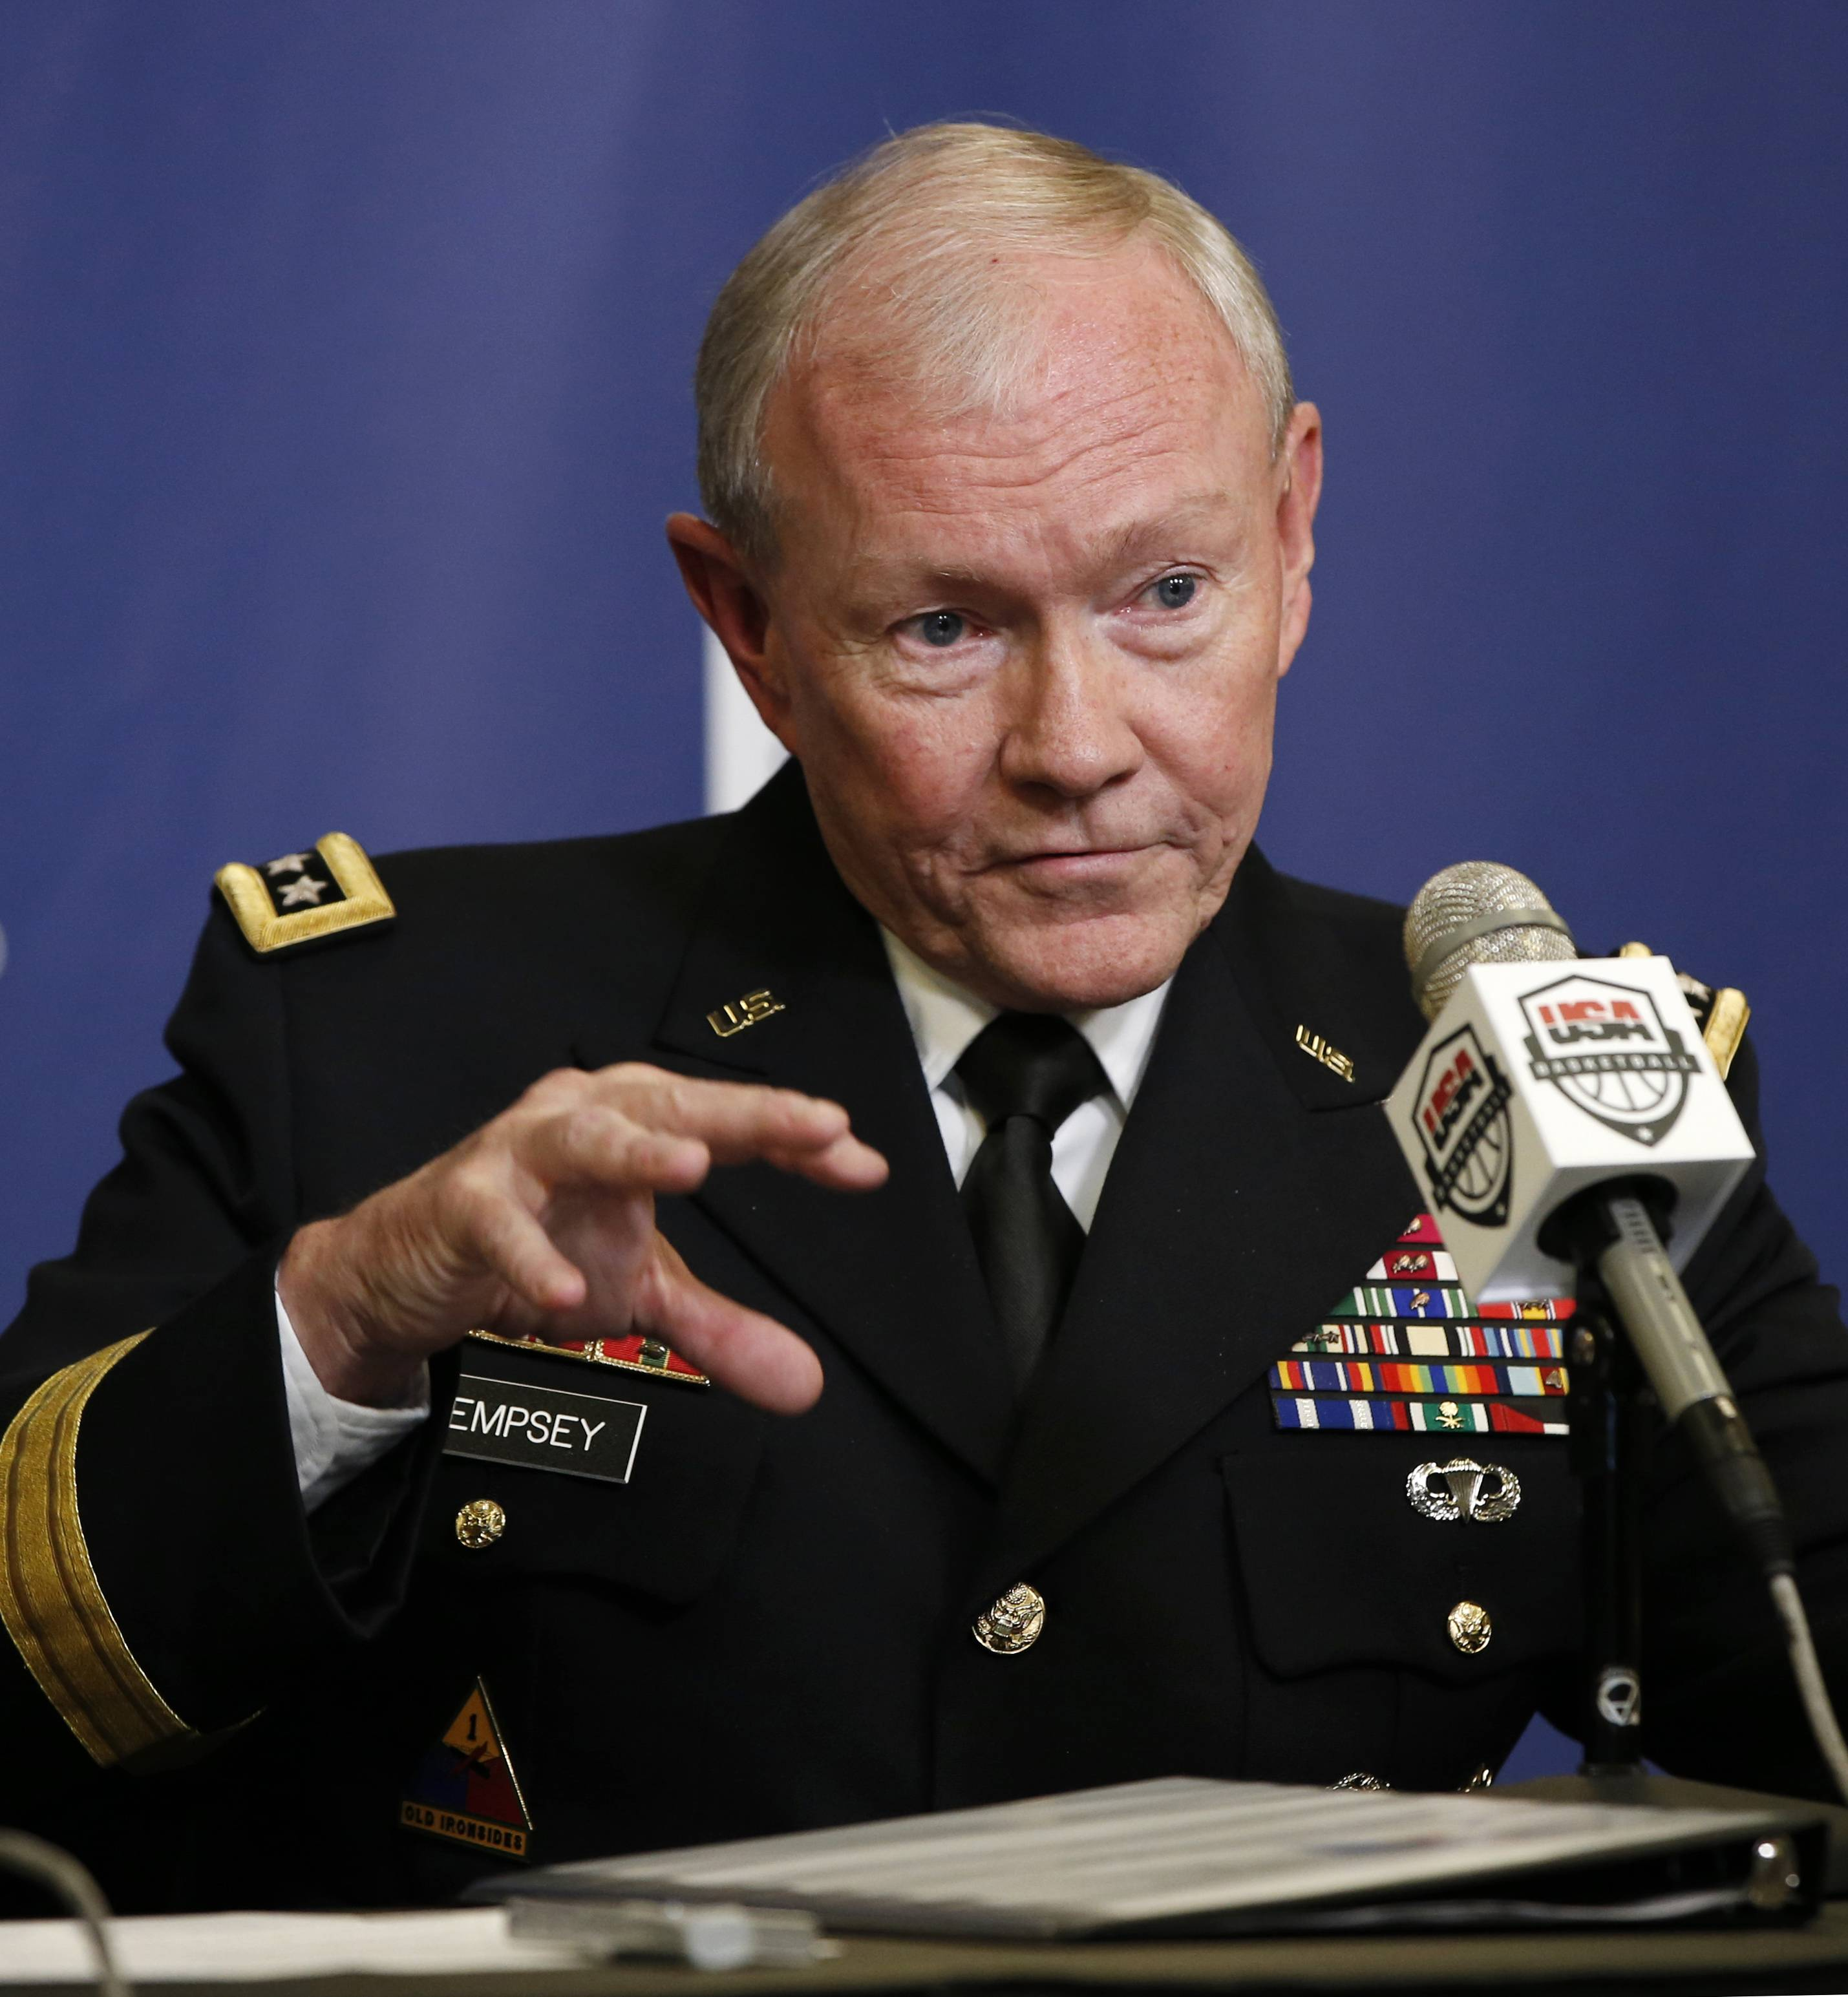 Joint Chiefs Chairman Gen. Martin Dempsey speaking in New York. President Barack Obama's military leadership made clear in recent days that the threat from the Islamic State militants, who murdered American journalist James Foley, cannot be fully eliminated without going after the group in Syria, as well as Iraq.